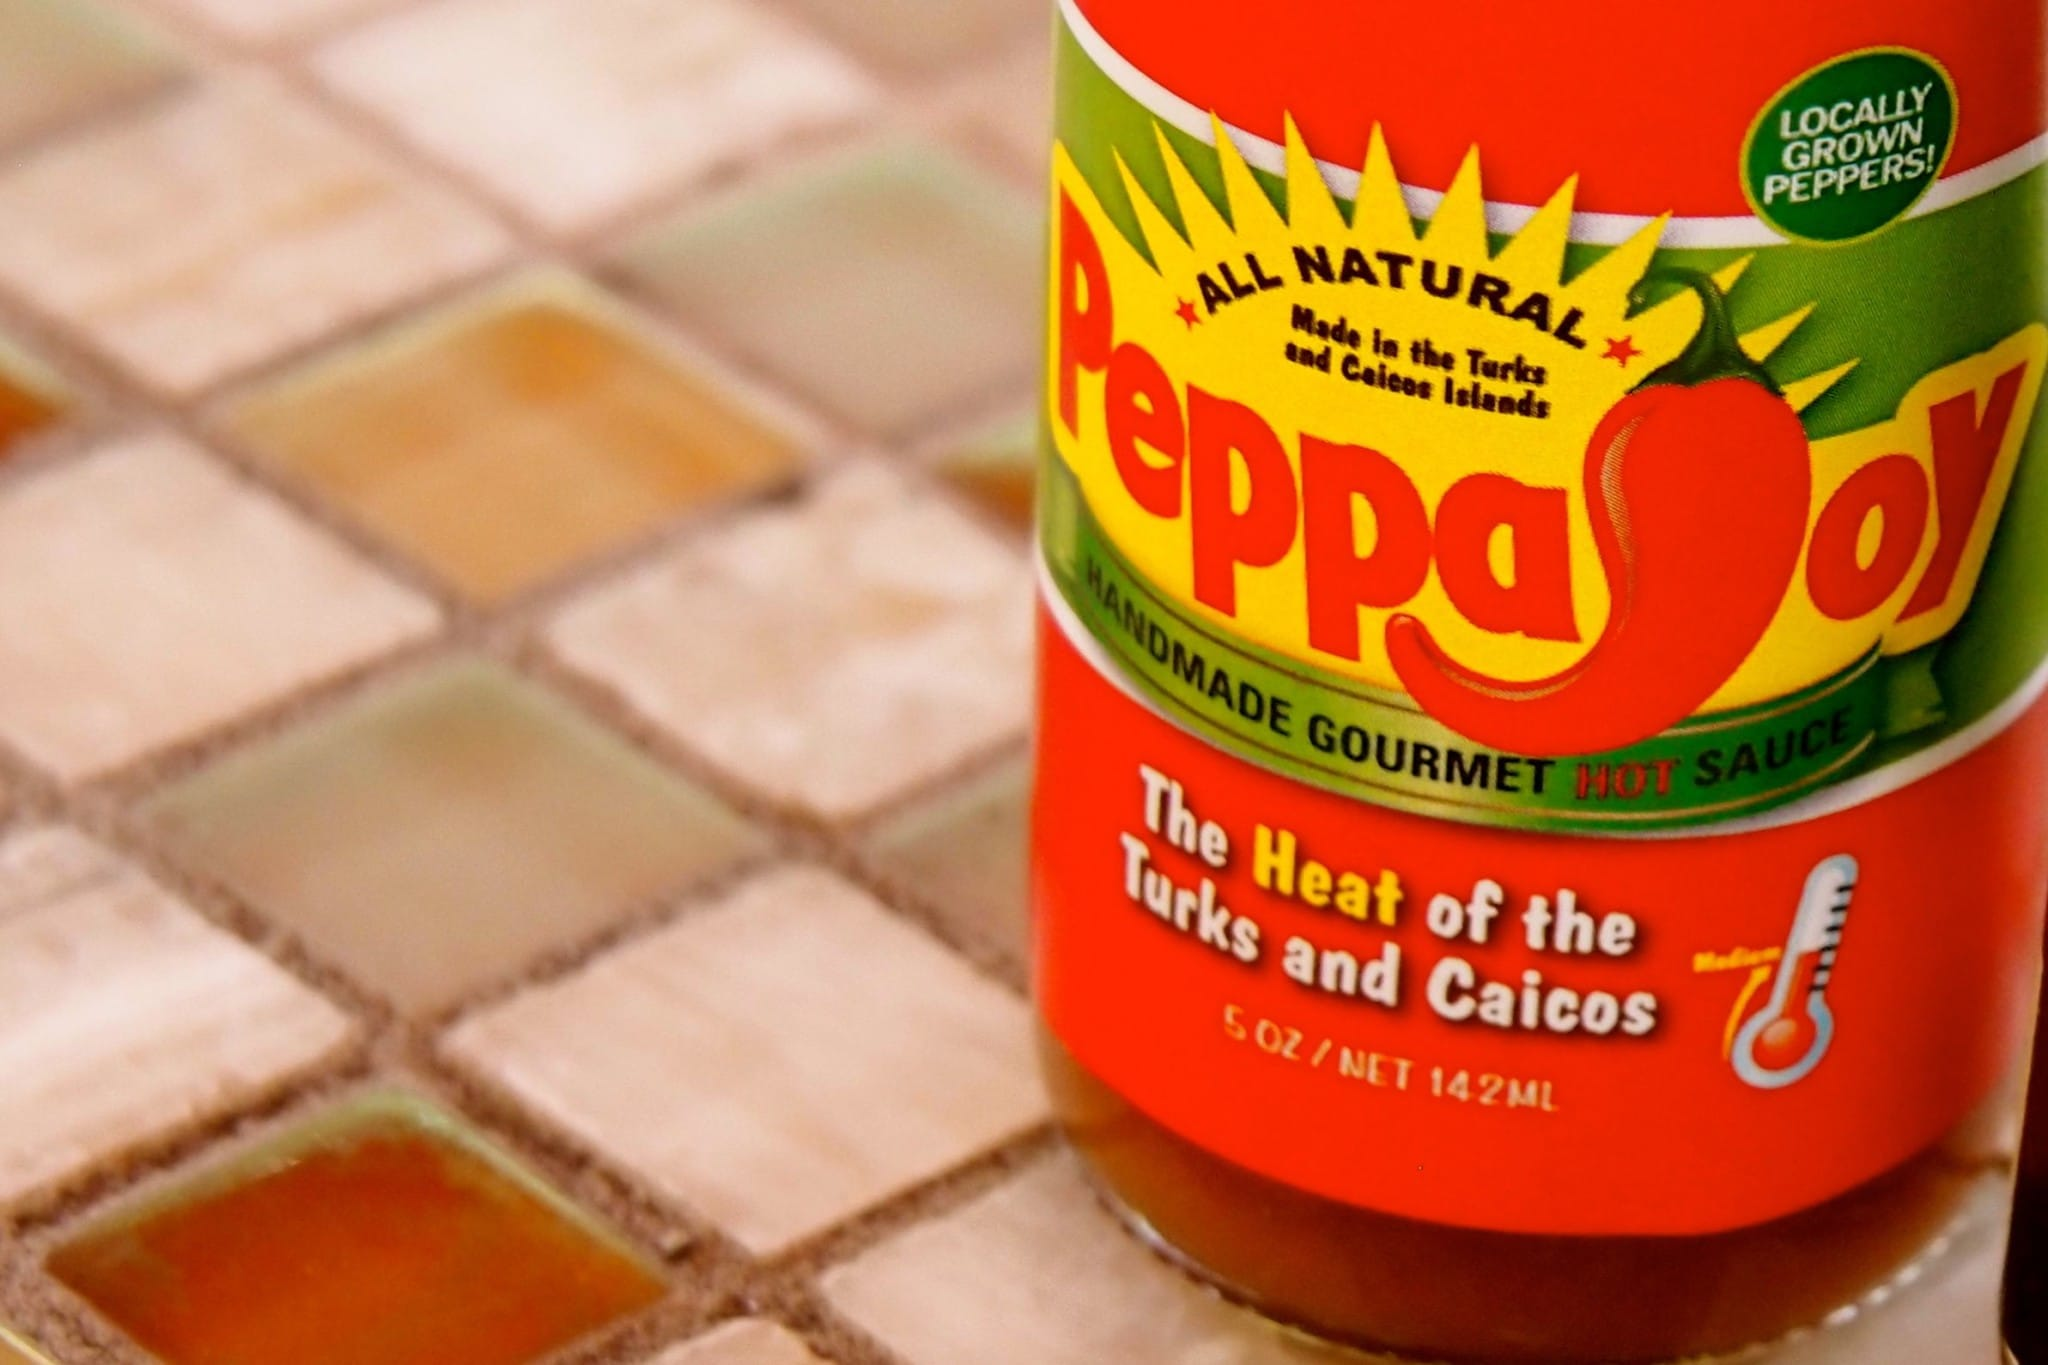 PeppaJoy Hot Sauce Turns Up De Heat in the Turks and Caicos